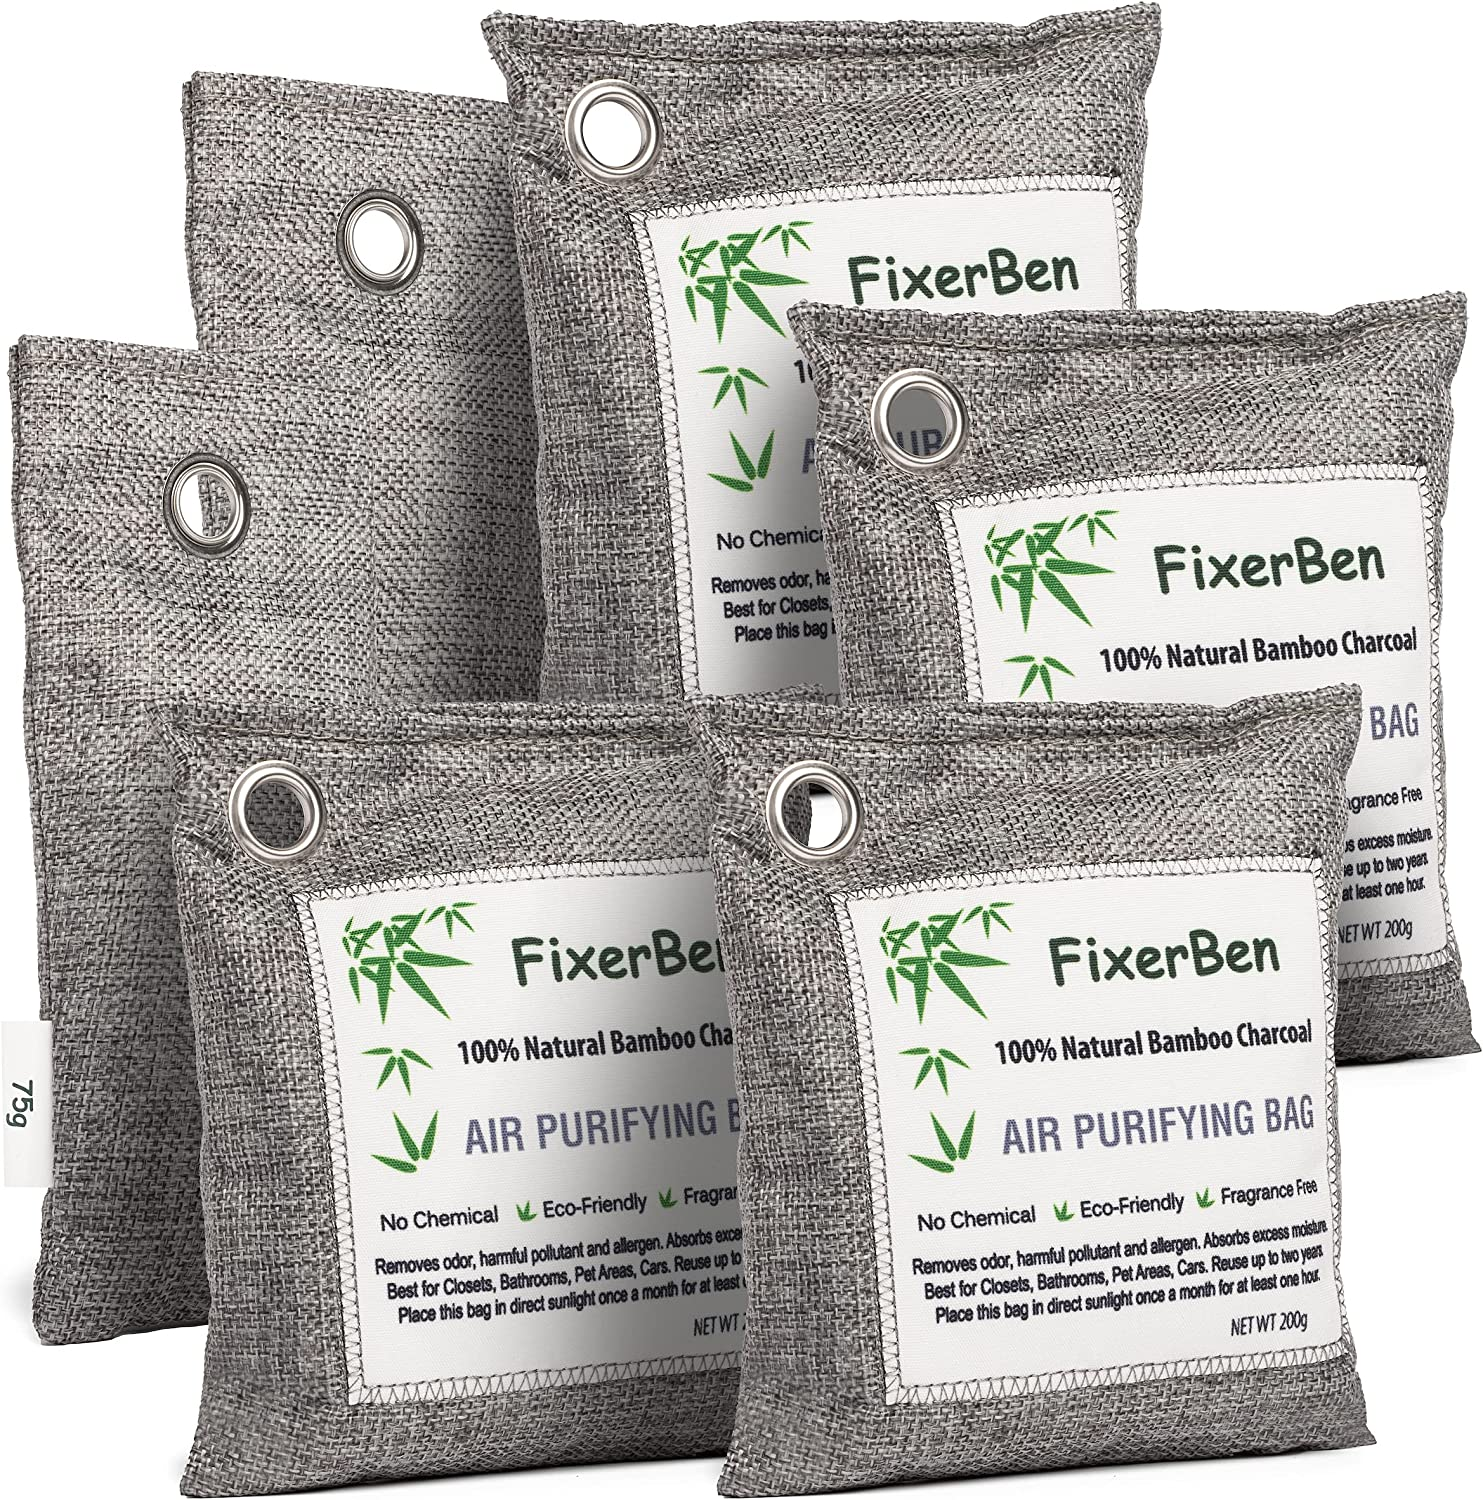 Bamboo Charcoal Air Purifying Bags 6 Pack (4 Pack200g;2 Pack75g) Activated Nature Fresh Charcoal Bag-Odor Absorber- Moisture Eliminator for Home Closet Room and Cars-Shoe Pet Deodorizer-Air freshener